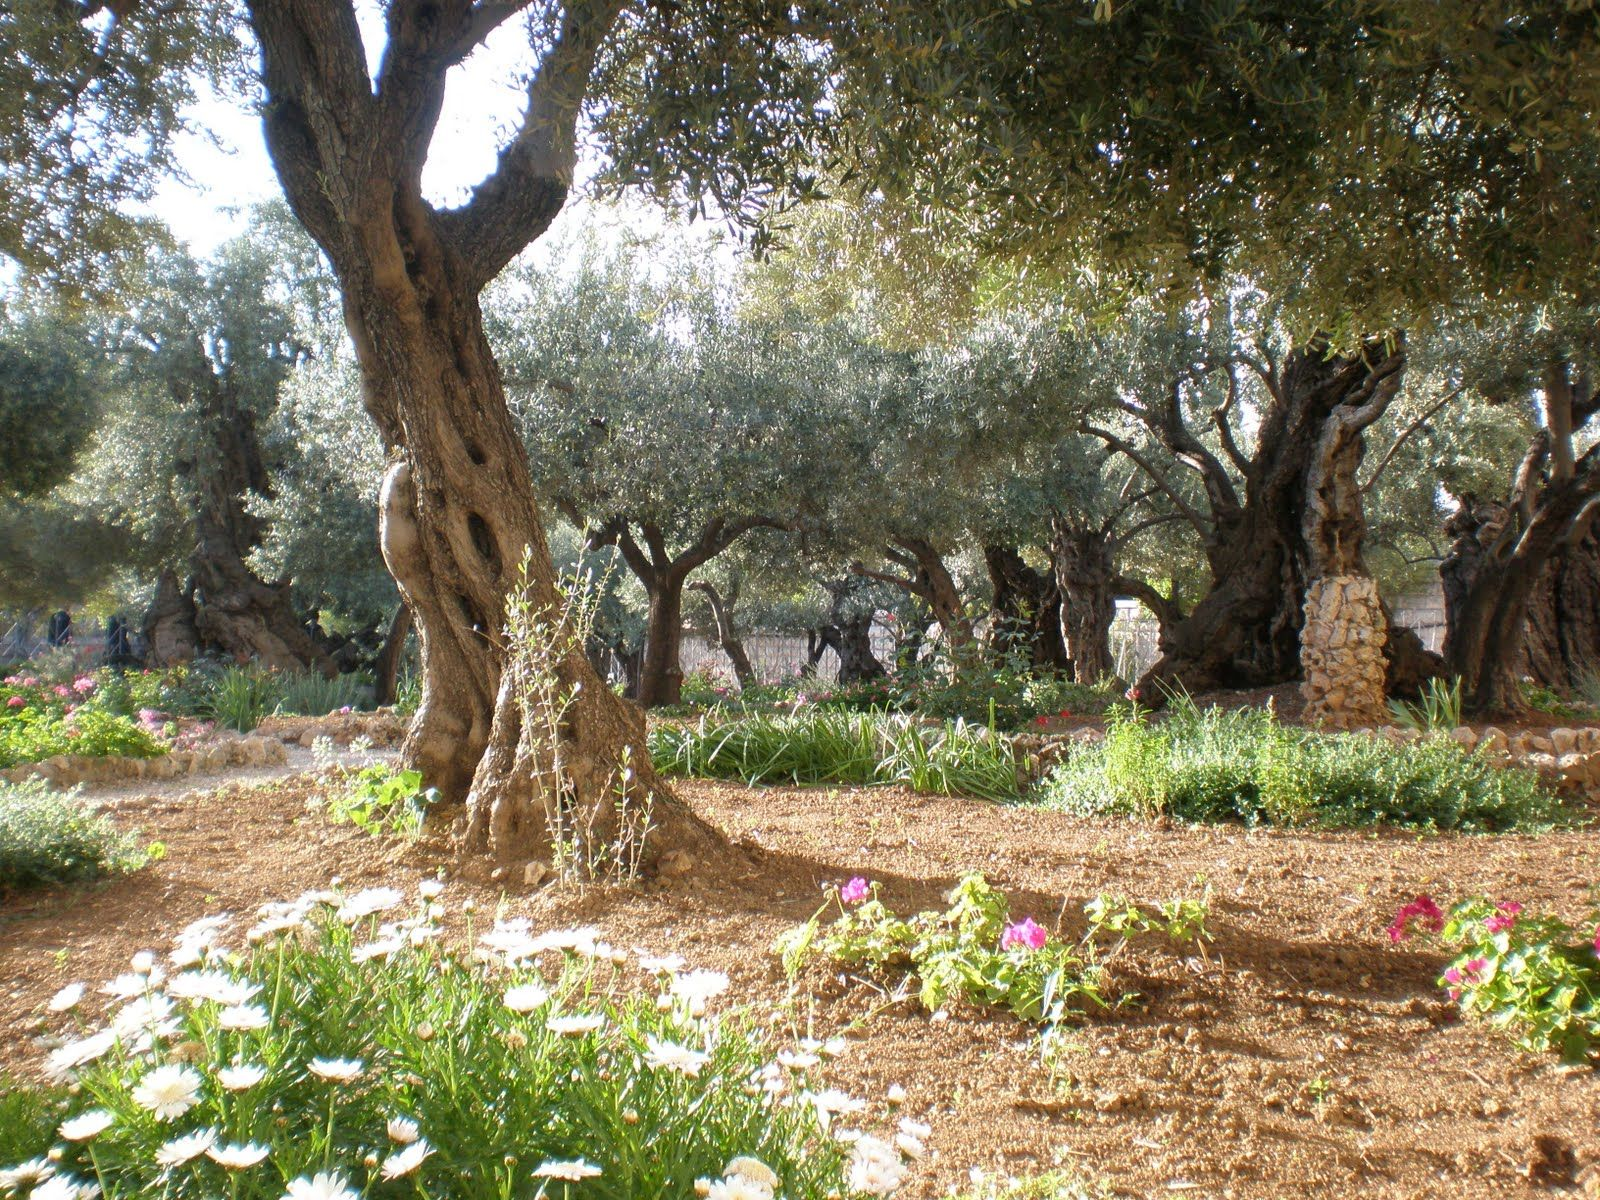 The Garden of Gethsemane According to all four Gospels